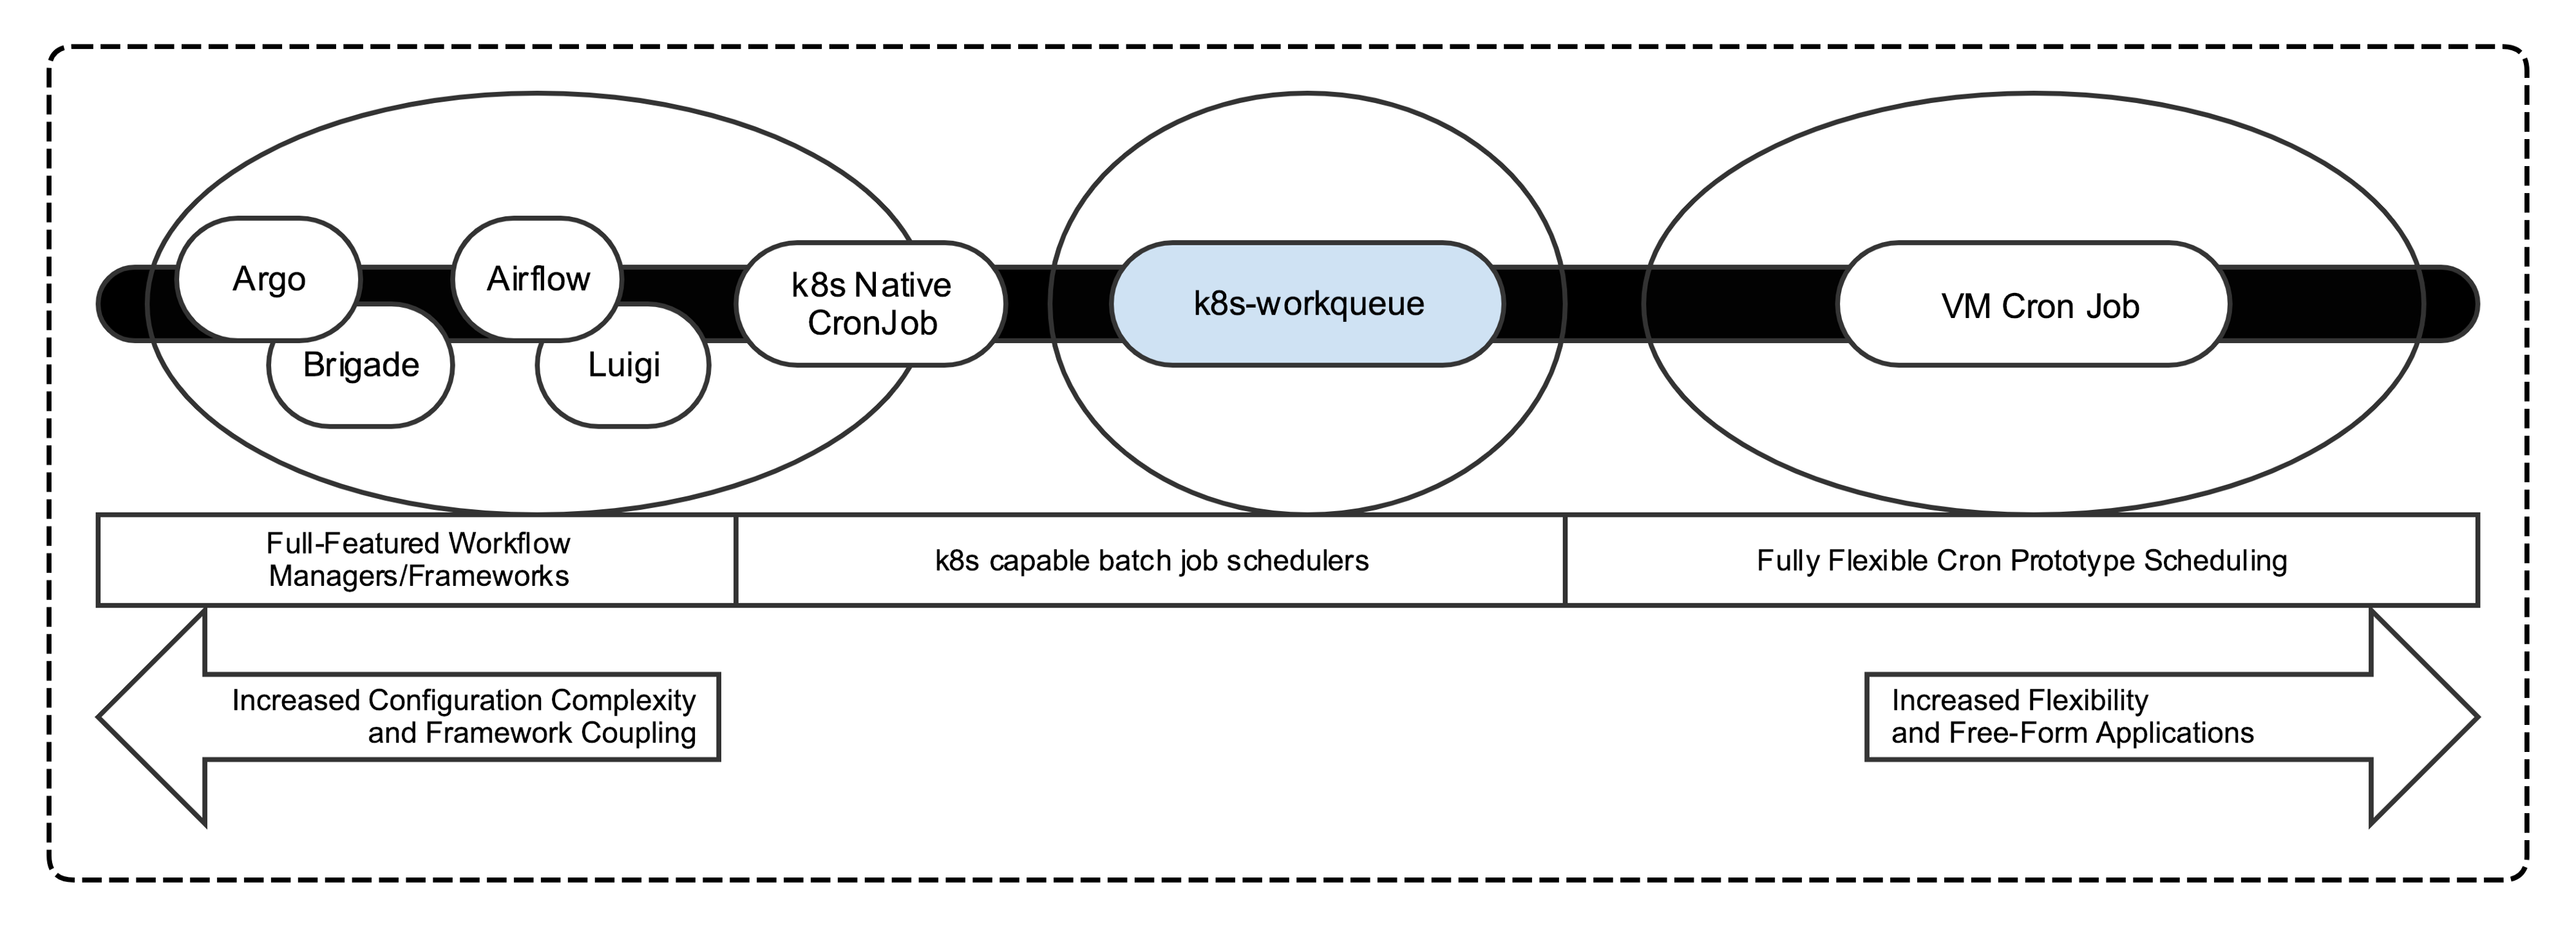 k8s-workqueue: Simplified Kubernetes Batch Jobs - AppNexus-tech